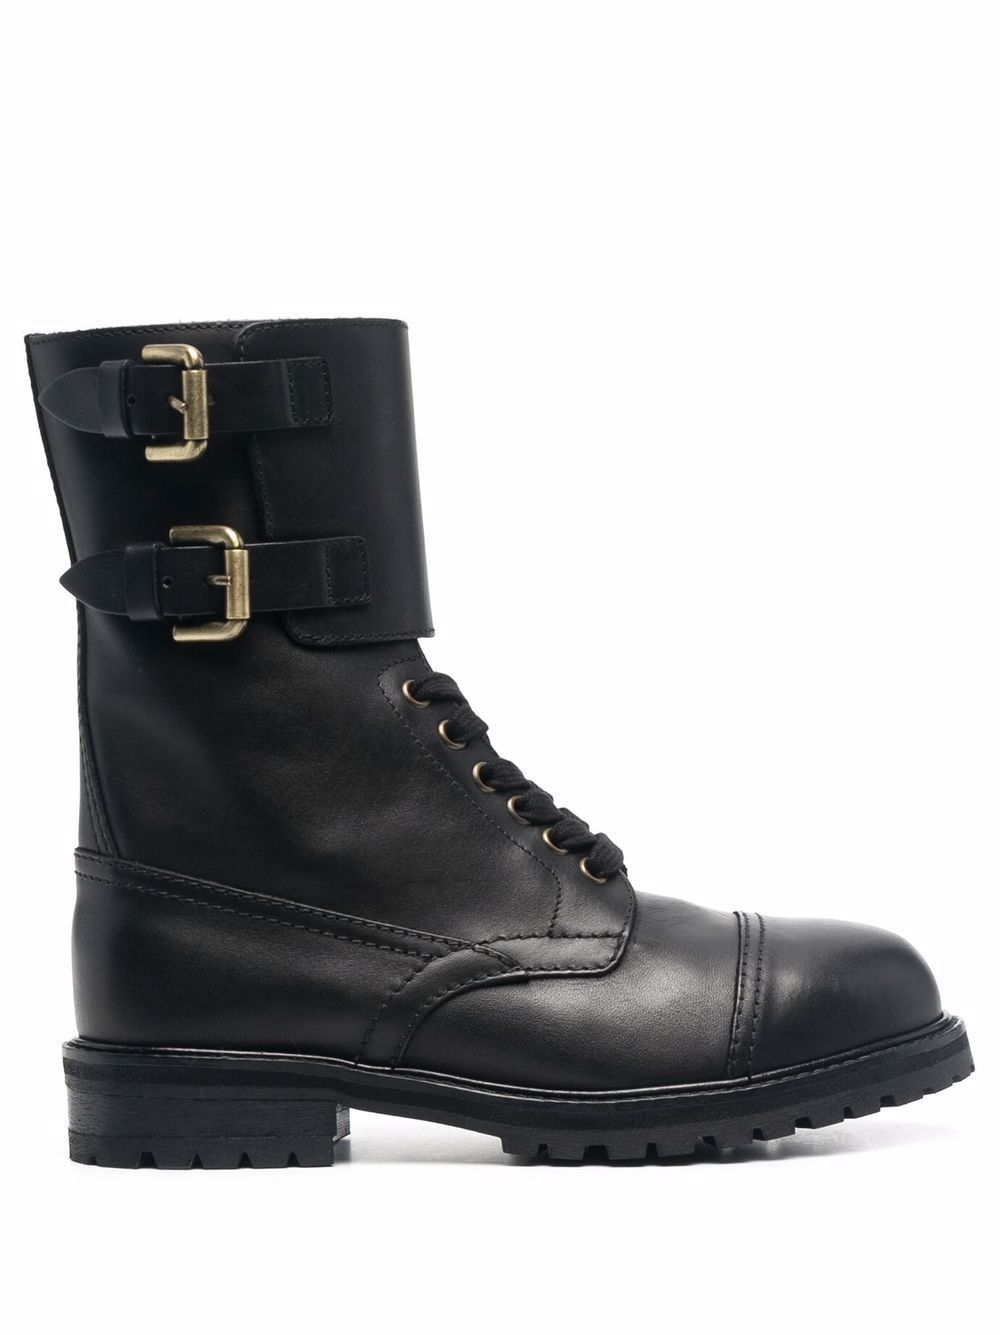 Hank leather ankle boots